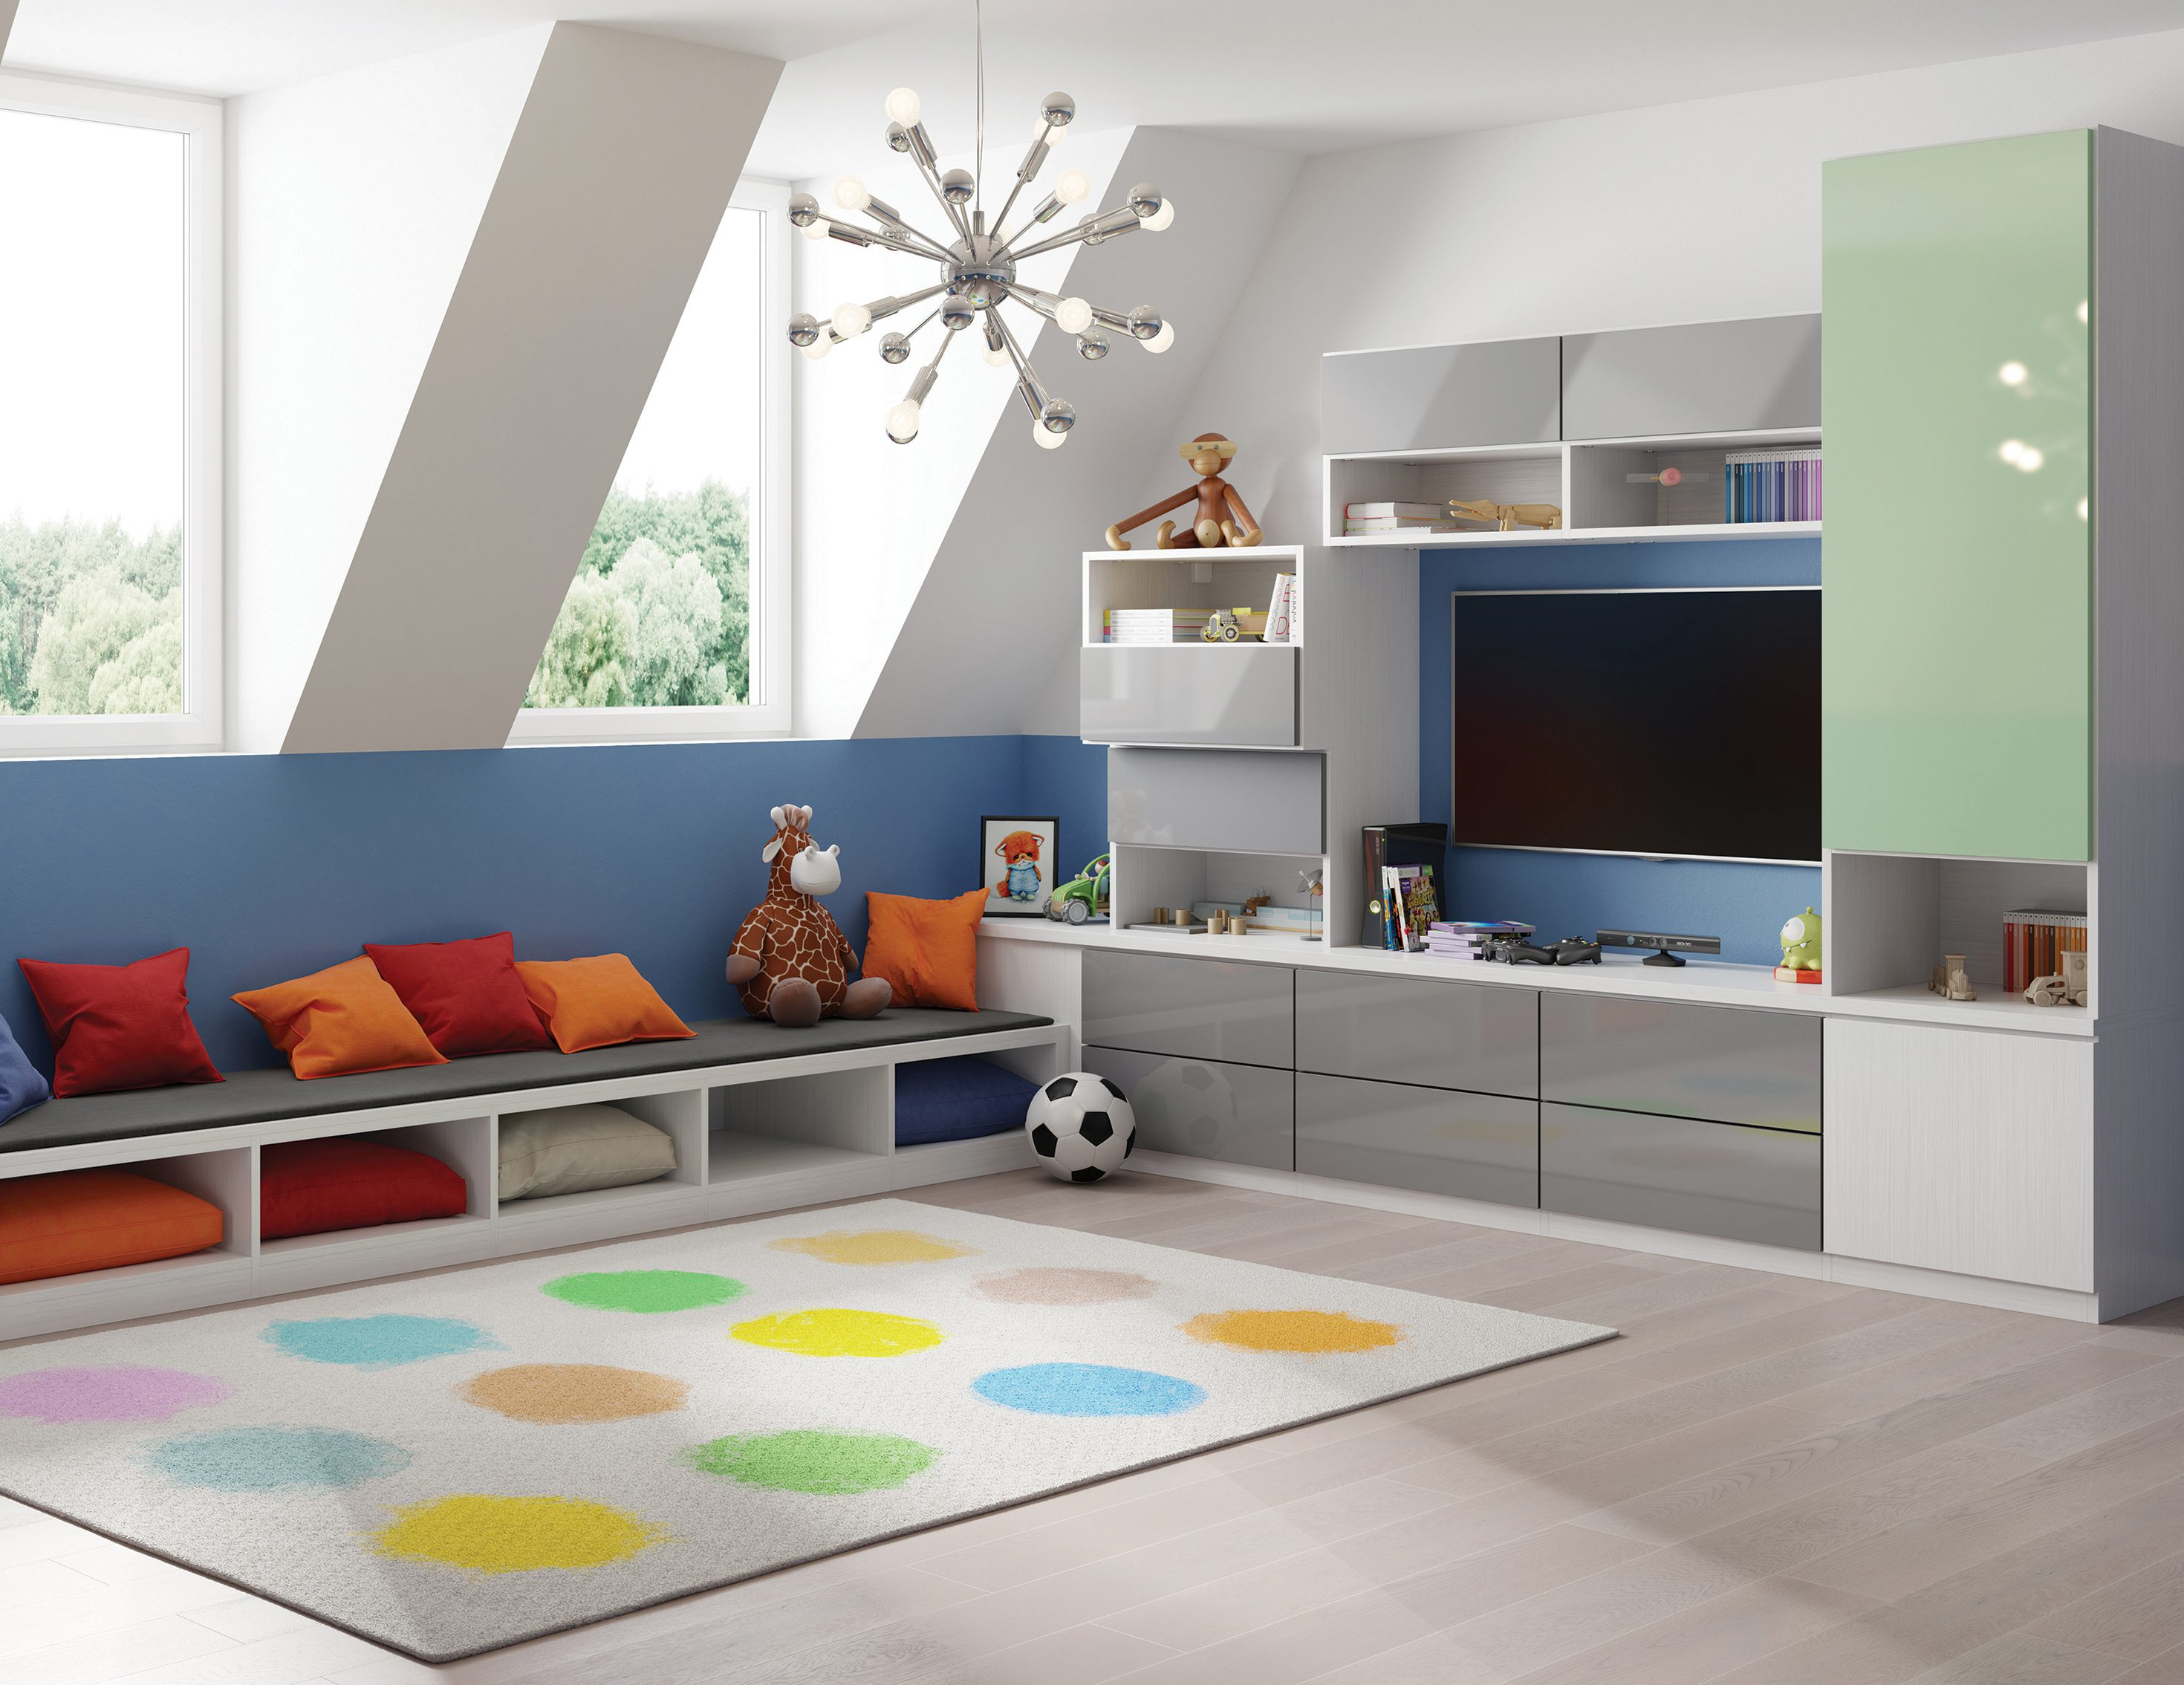 toy storage in living room ideas interior design for long rooms playroom systems california closets cheery attic